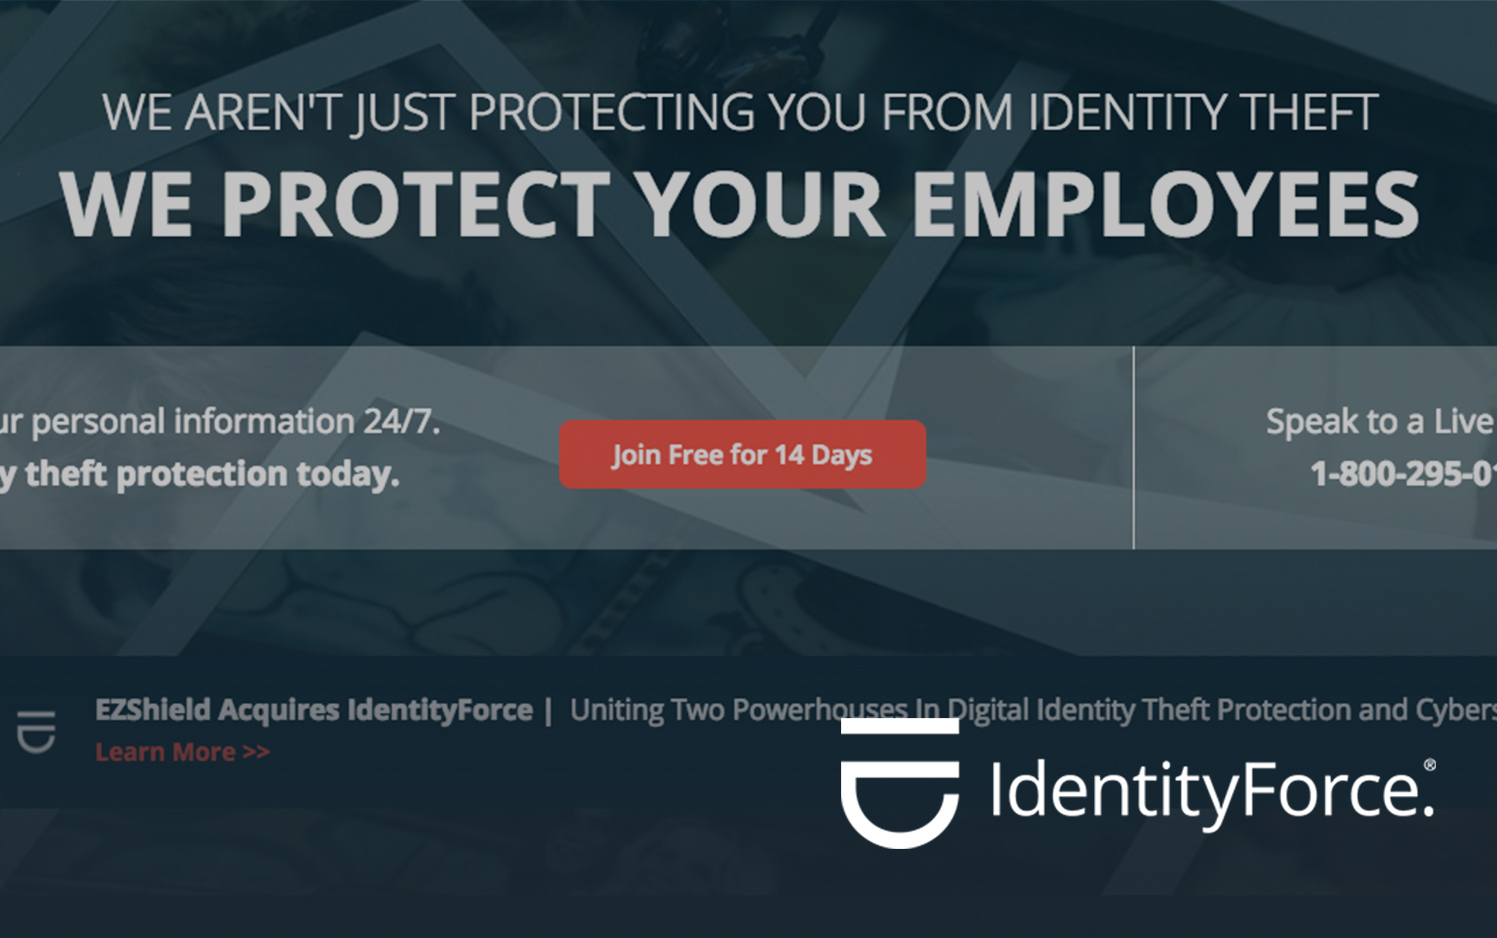 Best Identity Theft Protection 2019 - Monitoring After a